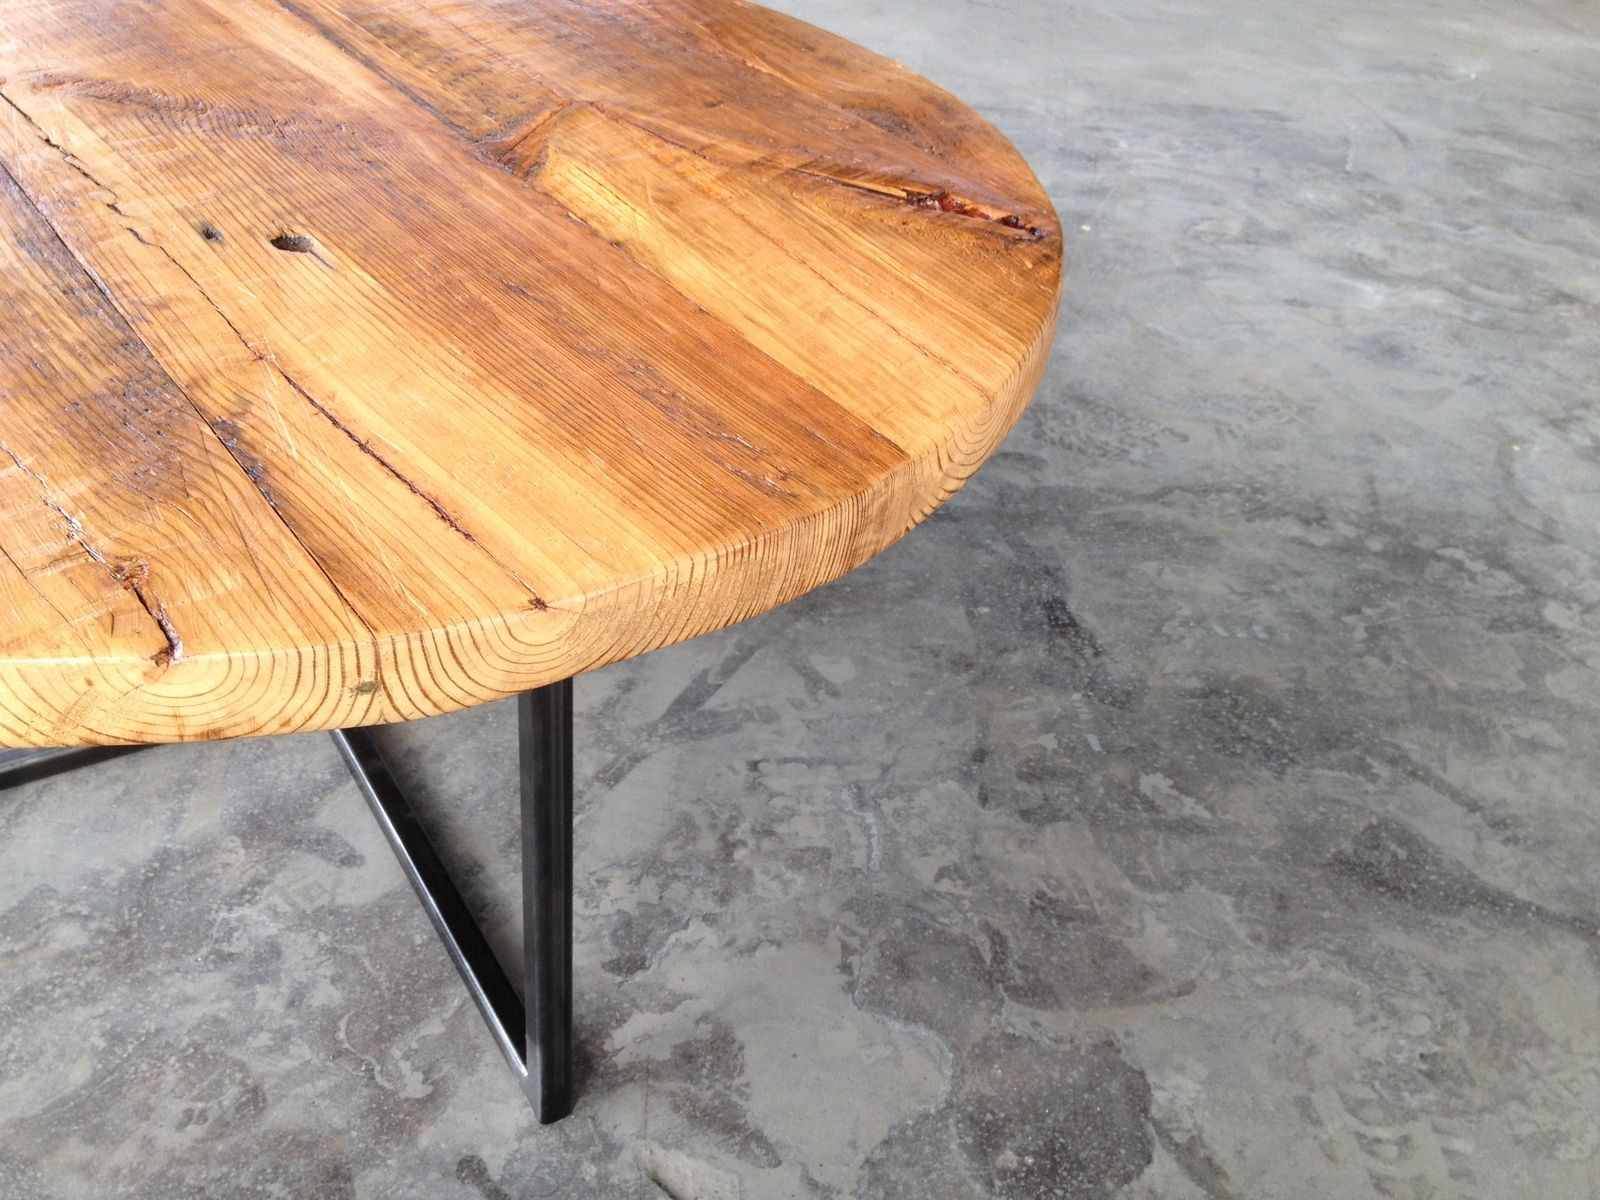 Hand Crafted Reclaimed Wood Table Round Reclaimed Wood And Steel